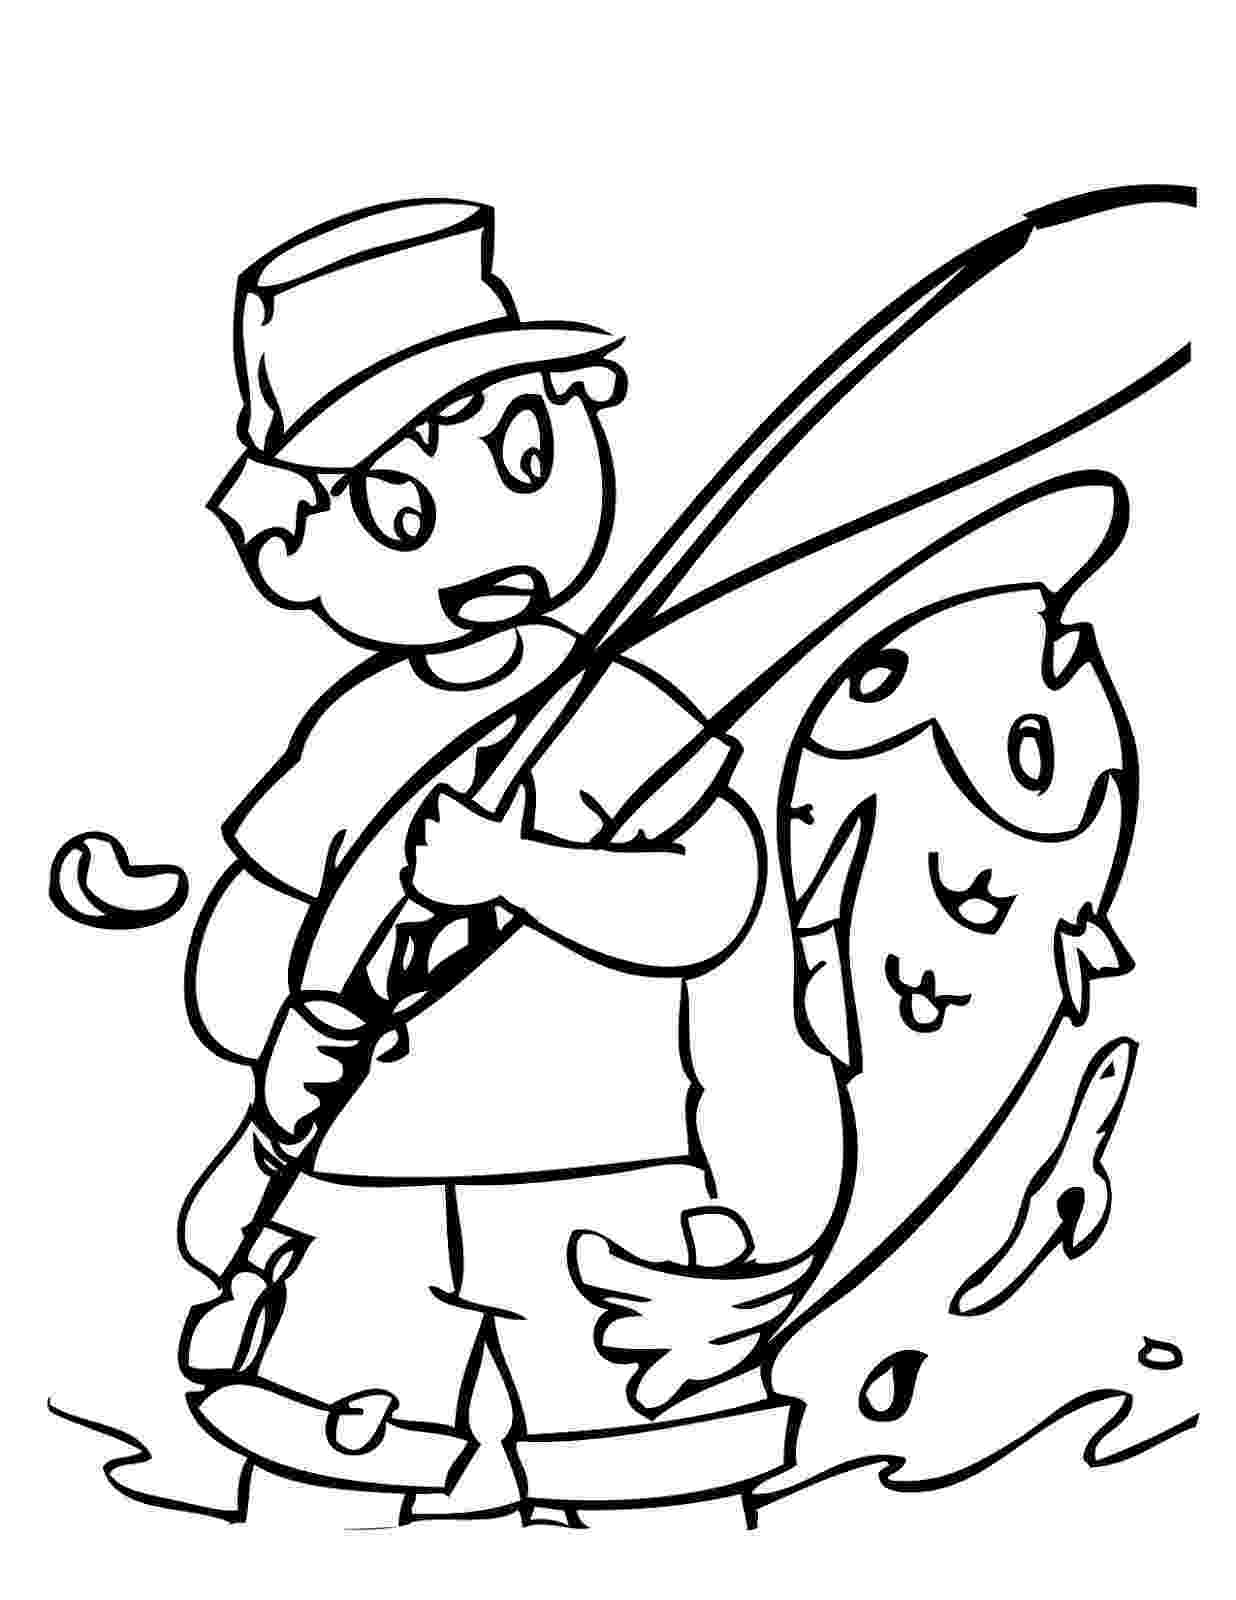 colouring pages fishing rod fishing coloring pages kids coloring coloring pages rod colouring fishing pages